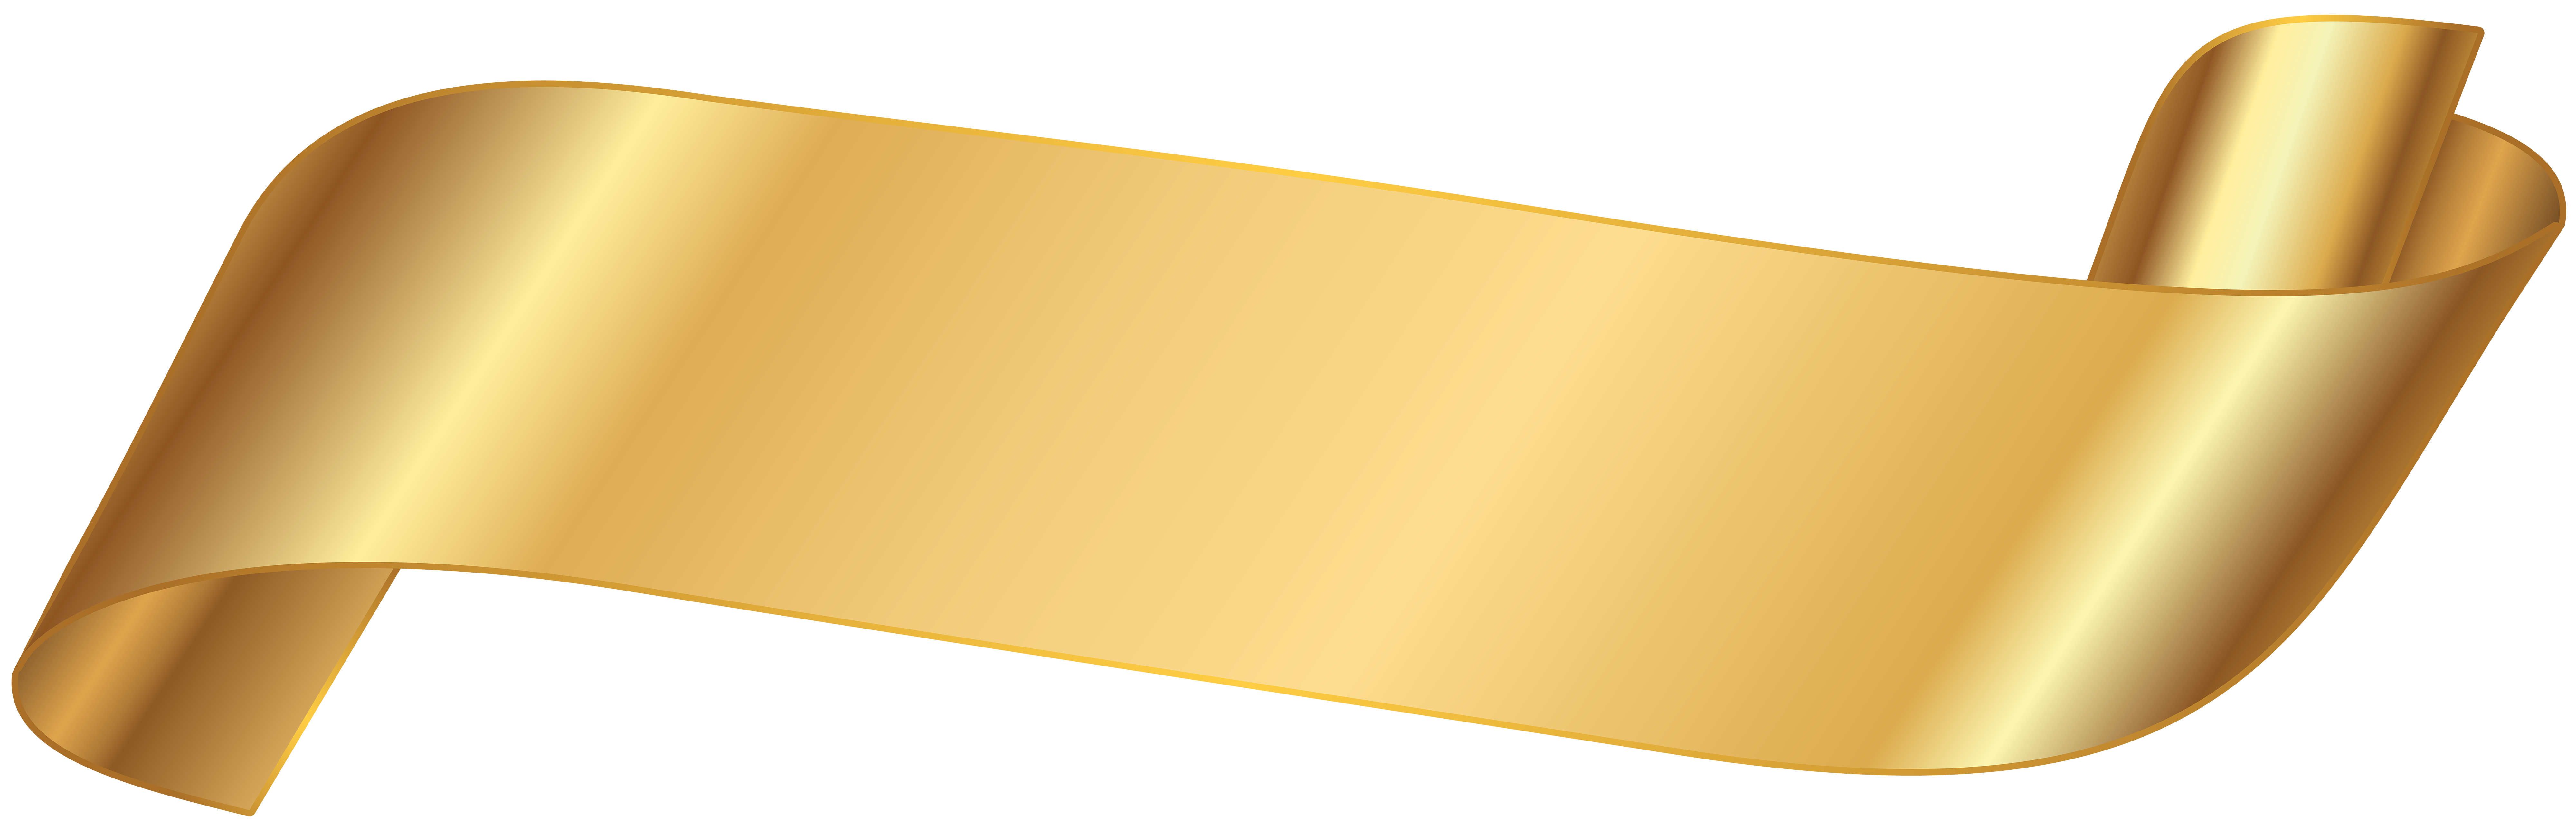 Gold banner png. Transparent image gallery yopriceville